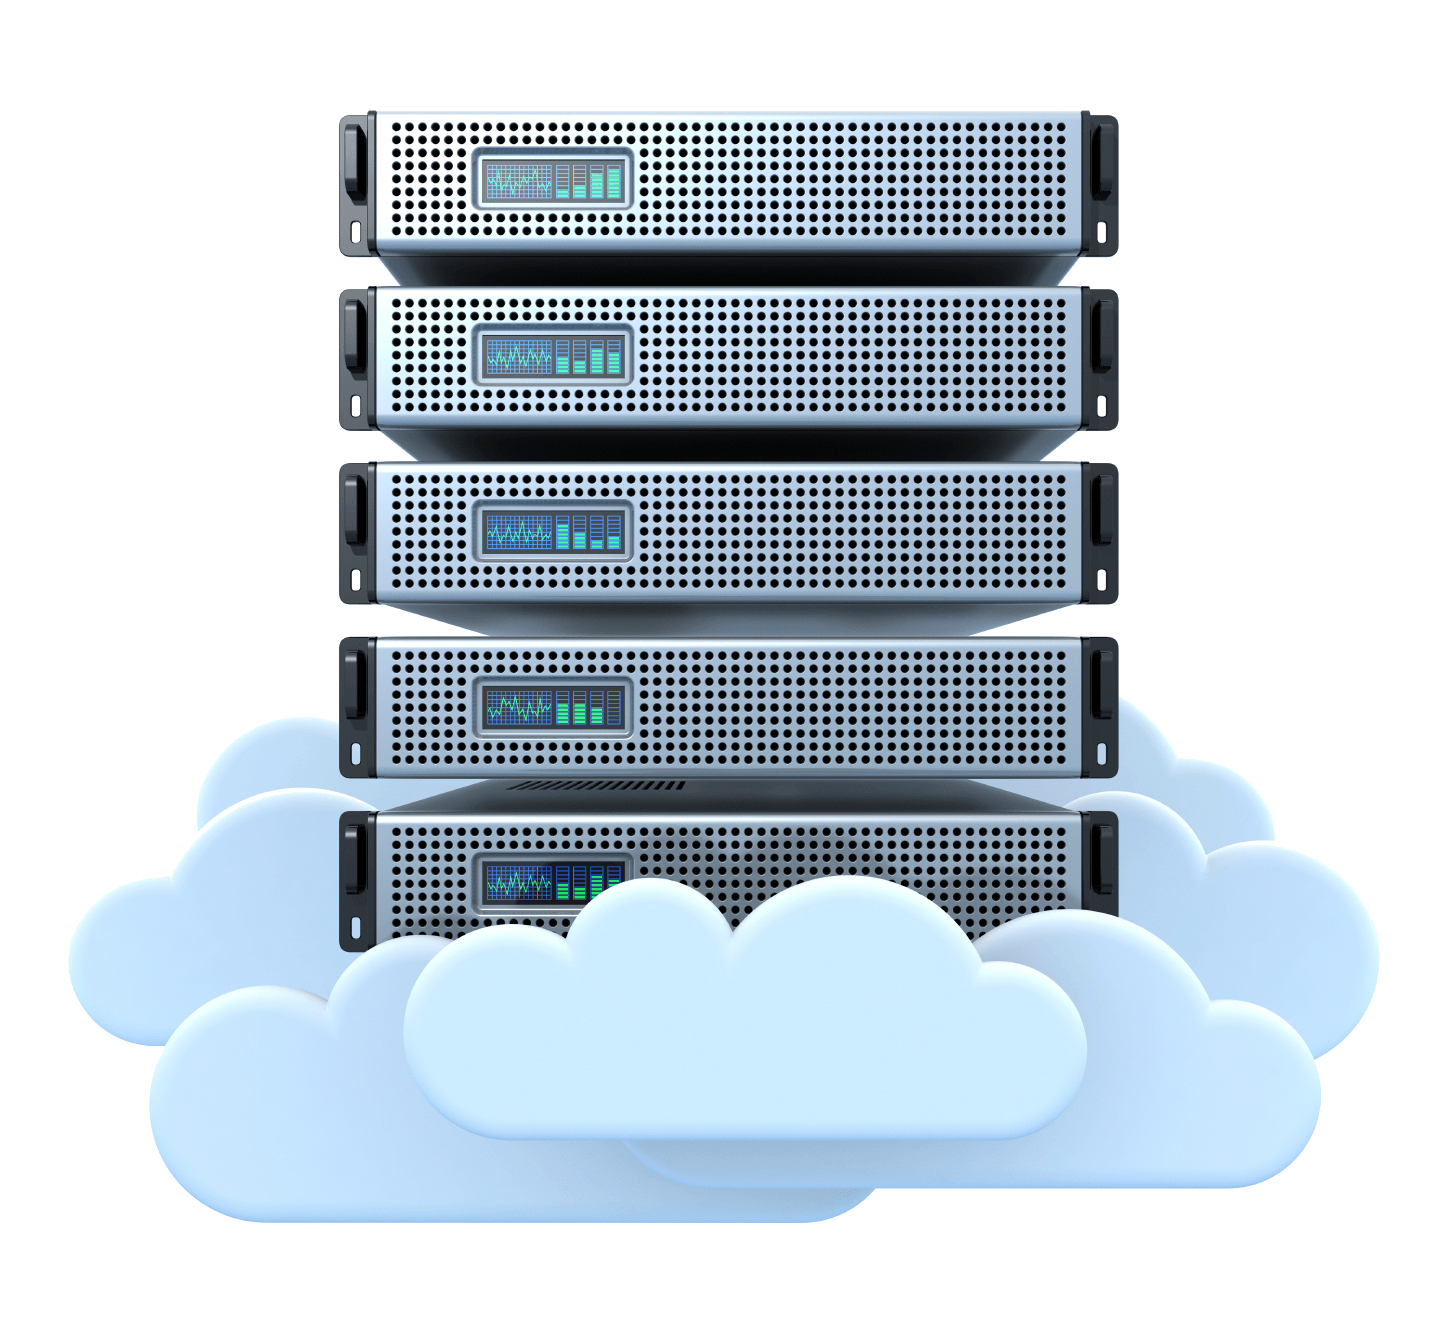 Data is backed in the cloud when using a cloud phone system for small business